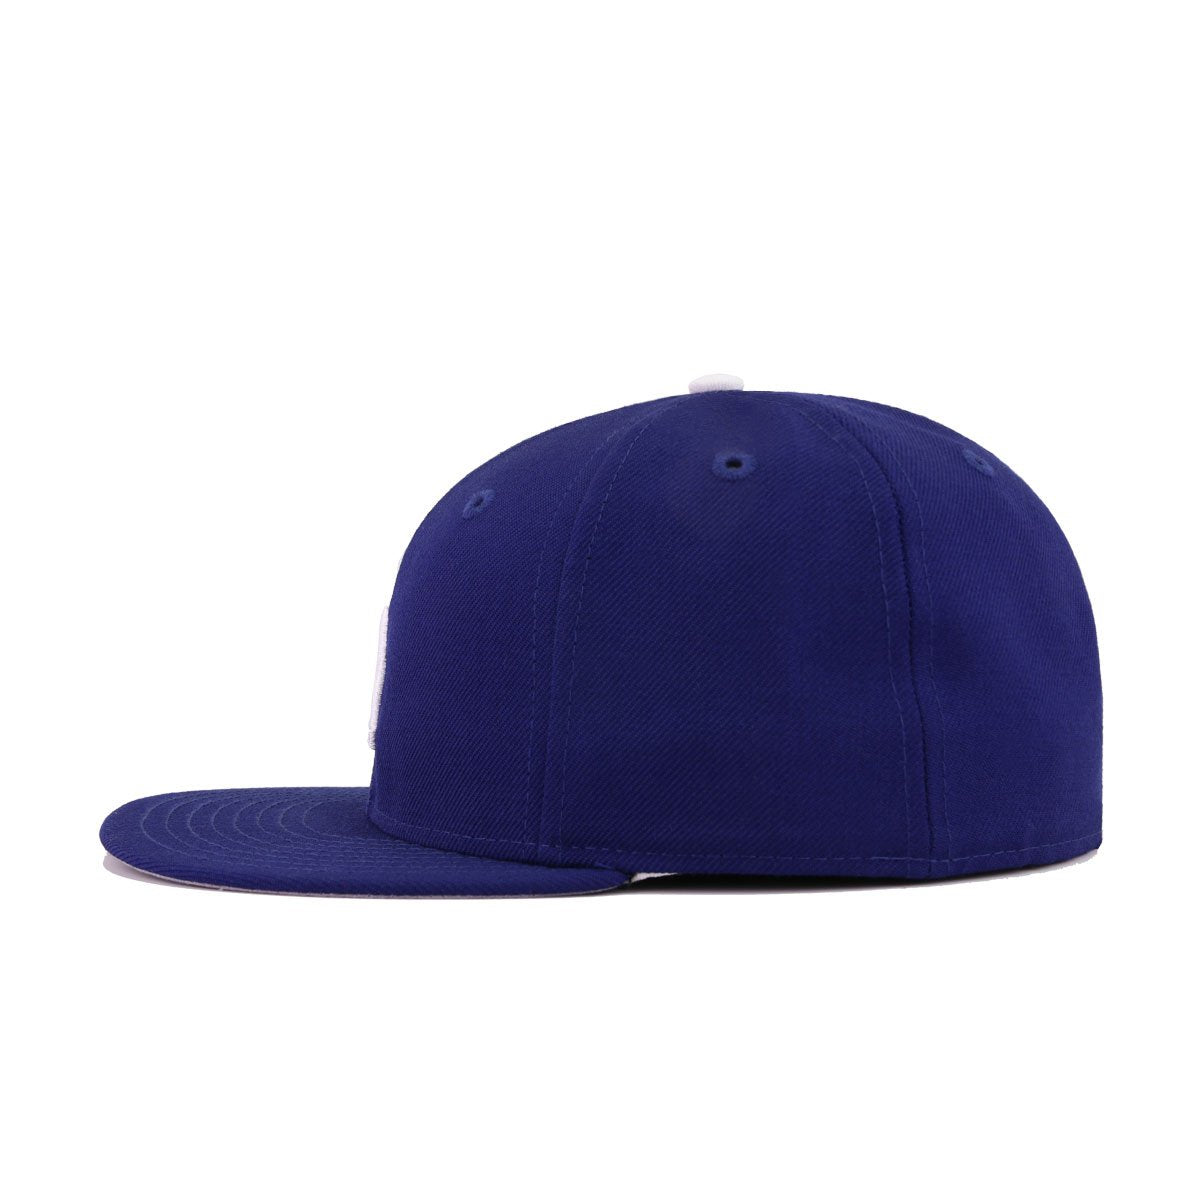 Los Angeles Dodgers Dark Royal Cooperstown New Era 59Fifty Fitted